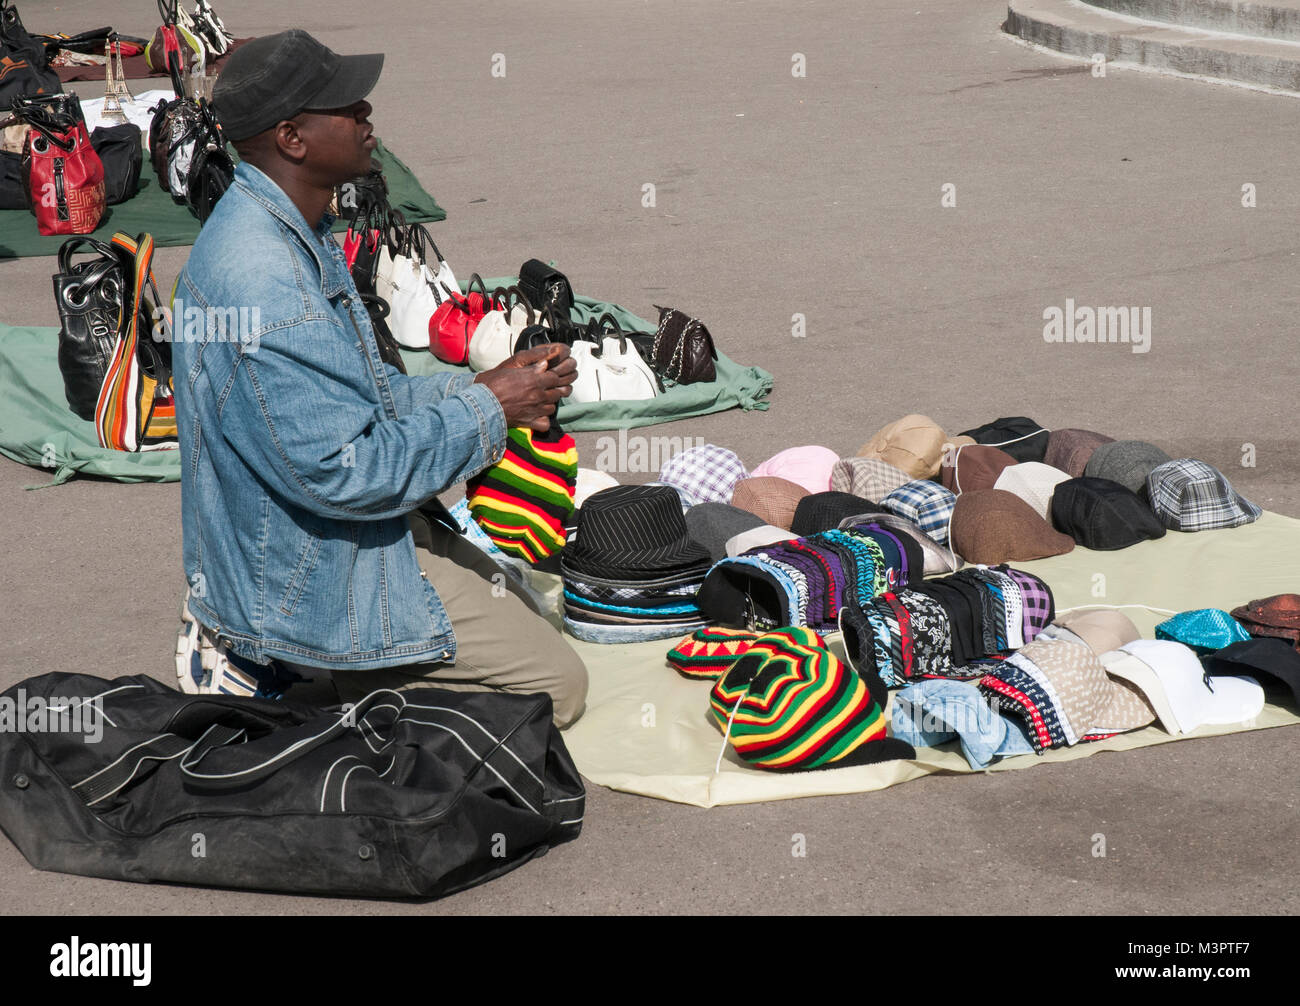 African immigrant pavement vendor in Montmartre, Paris - Stock Image